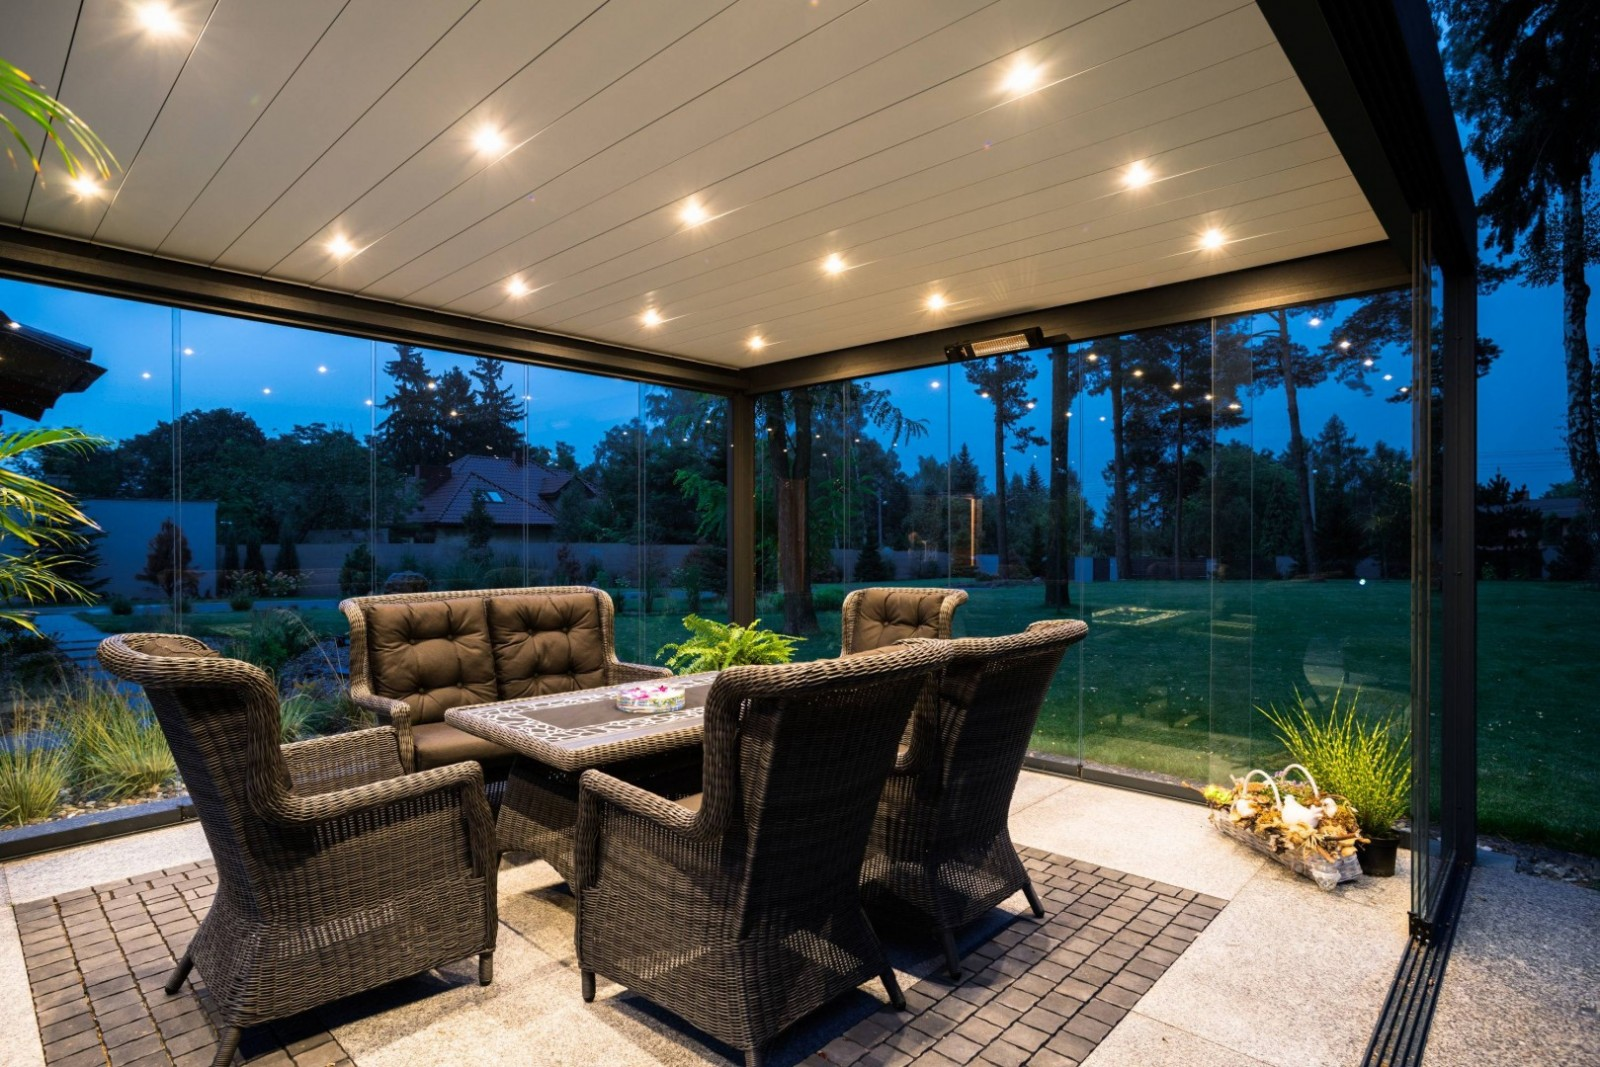 Pergola Lighting 8